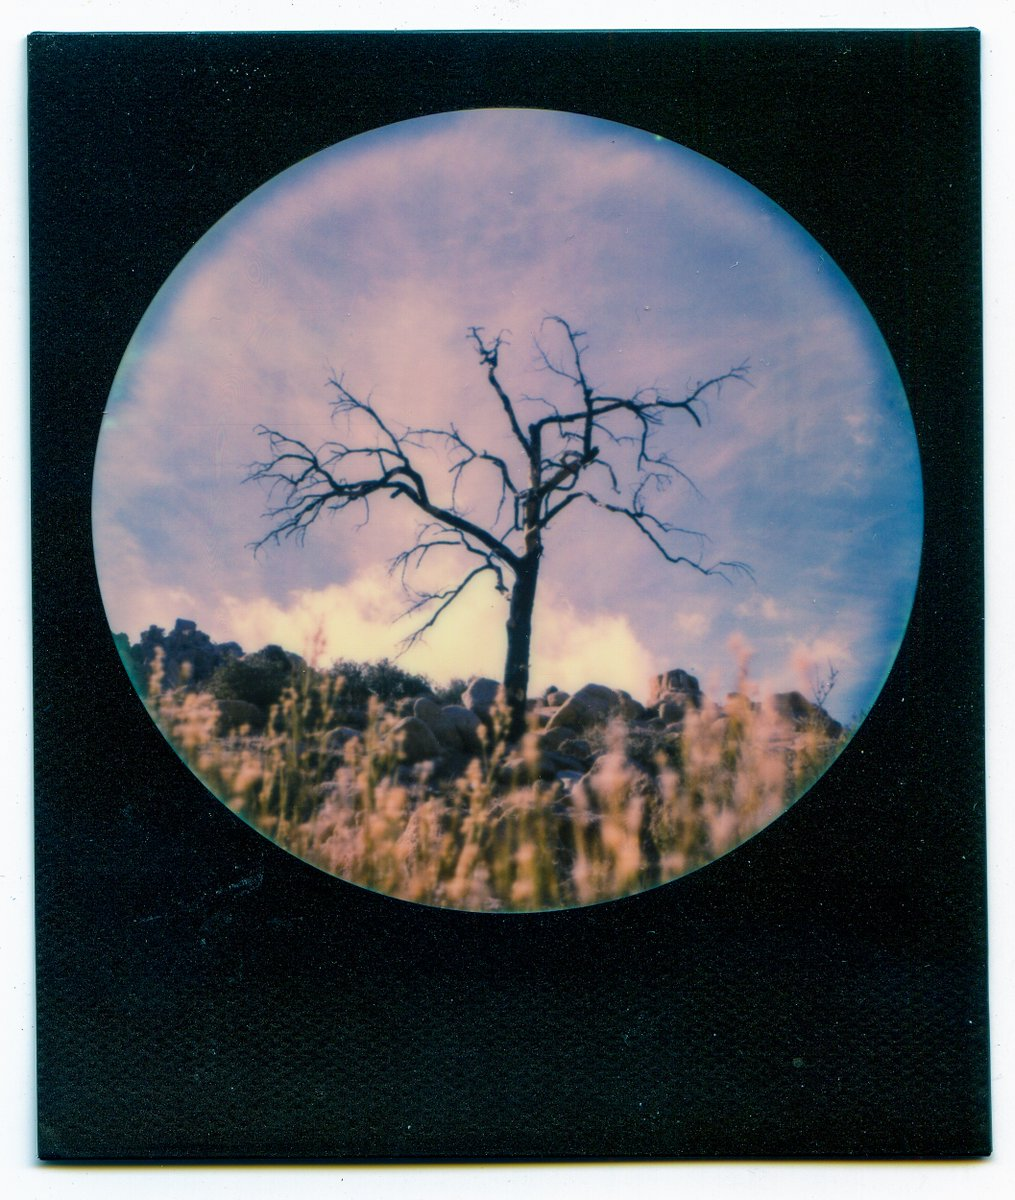 The Survivor (2020) Pioneertown, California my round frame #Polaroid pic.twitter.com/HuFgqRHIY7